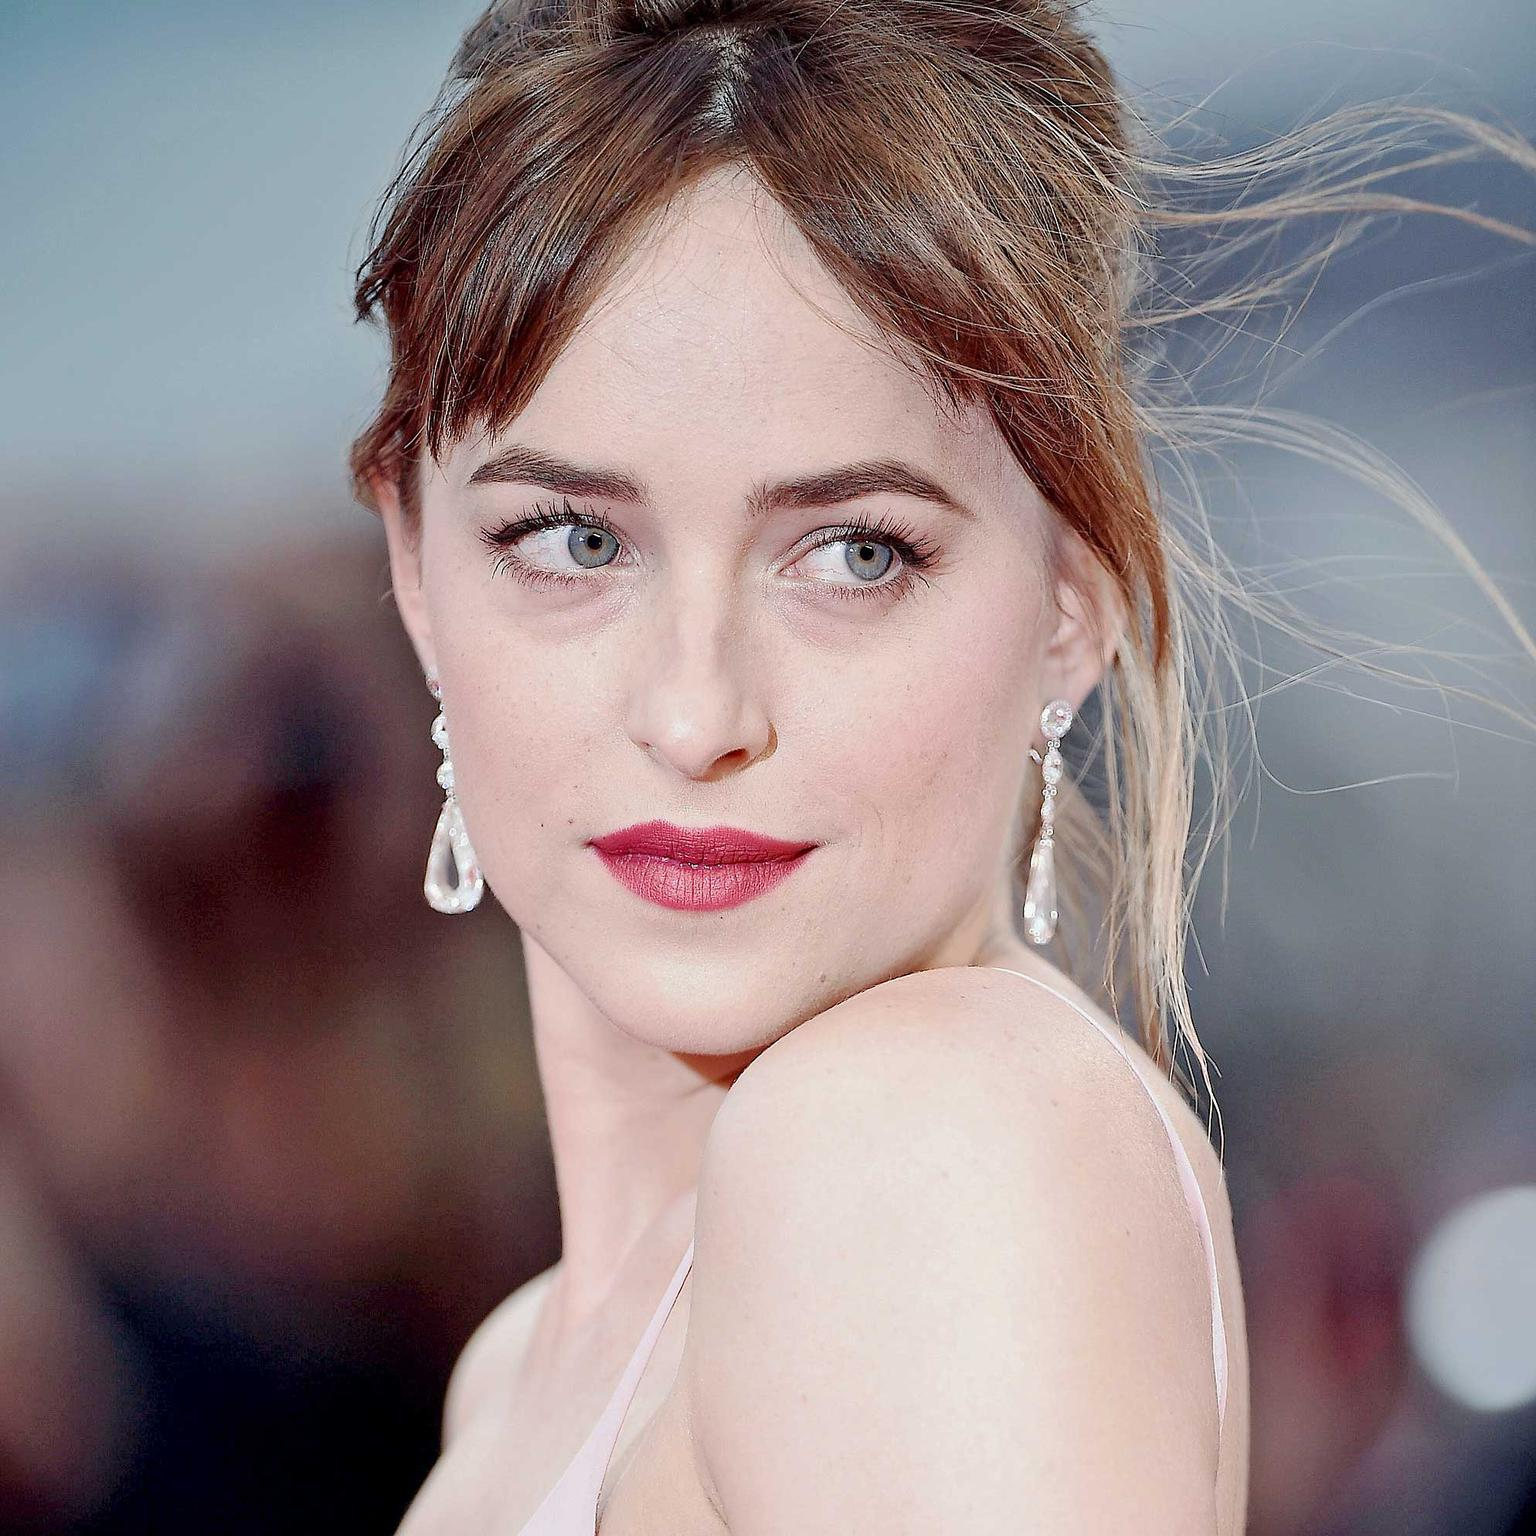 Dakota Johnson at the Black Mass premiere wearing Chopard